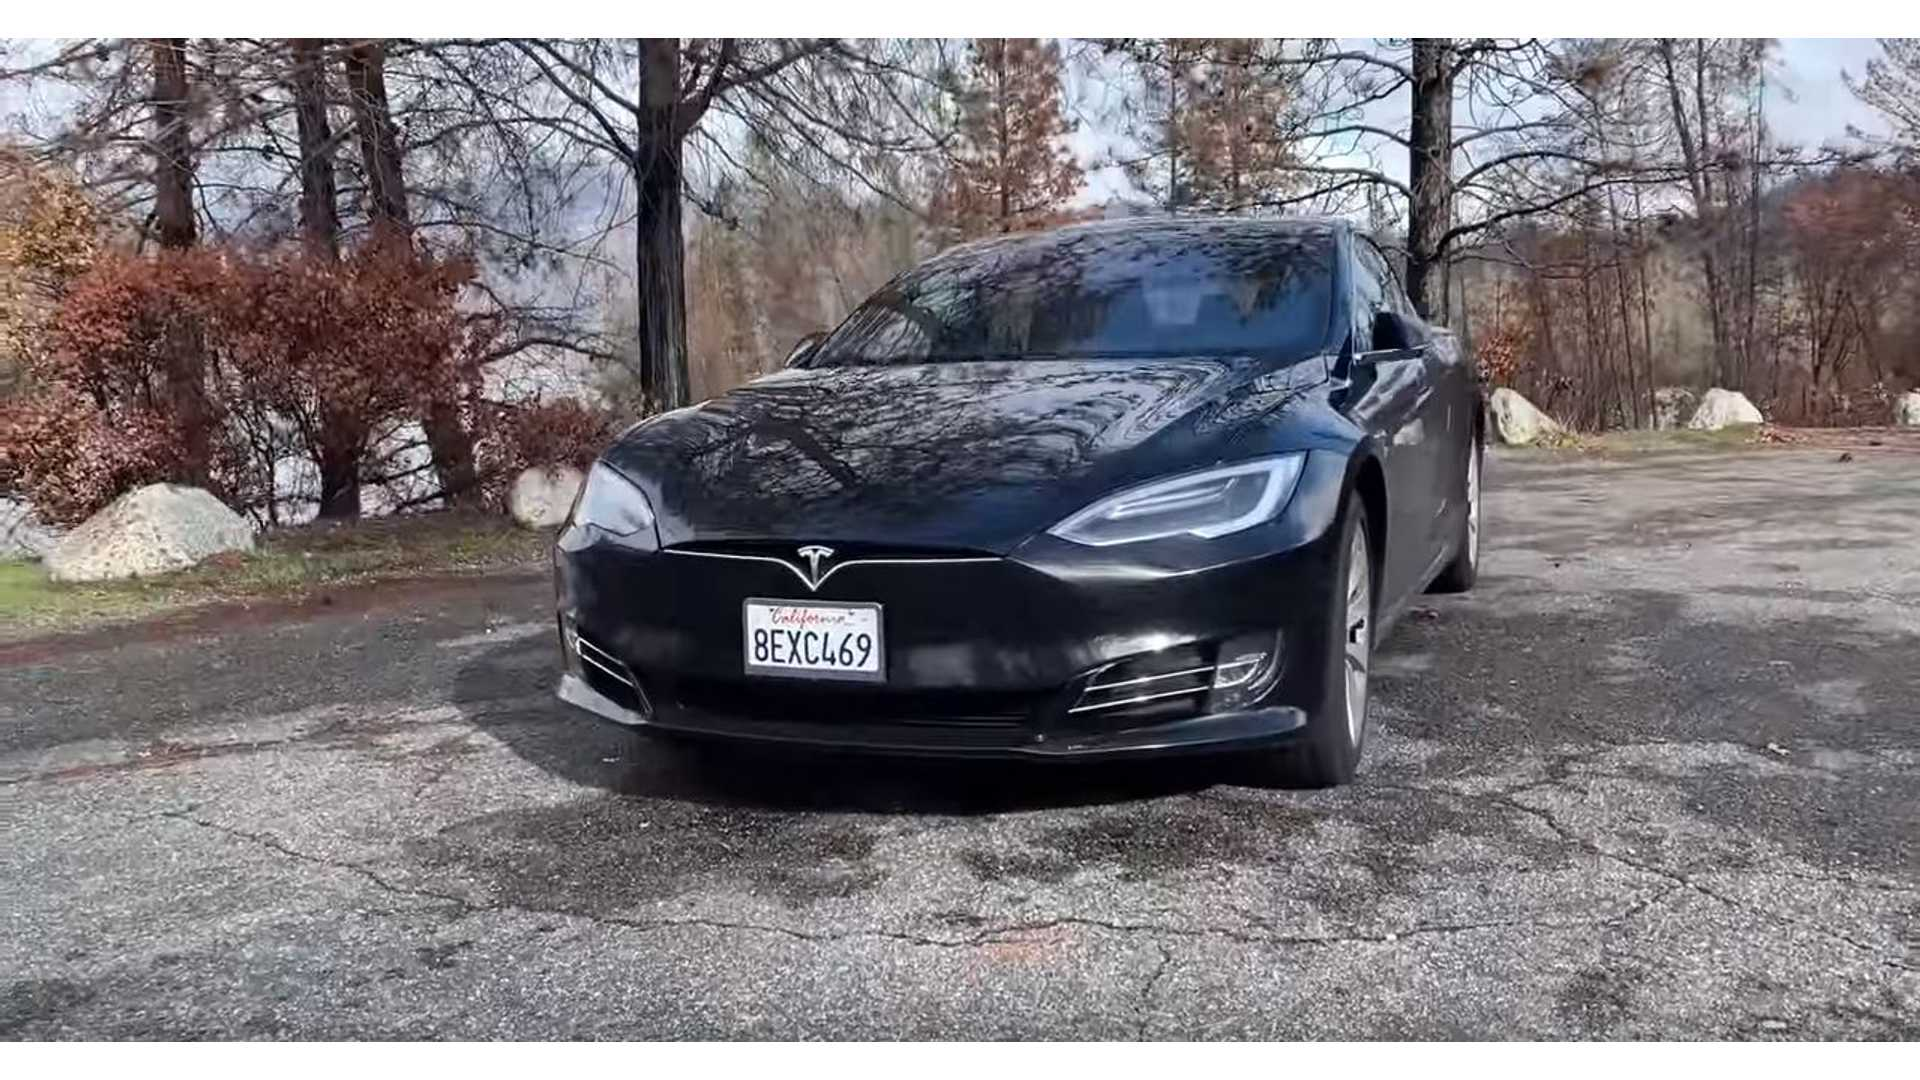 An 8-Day Road Trip In A High-Mileage 2012 Tesla Model S, No Autopilot